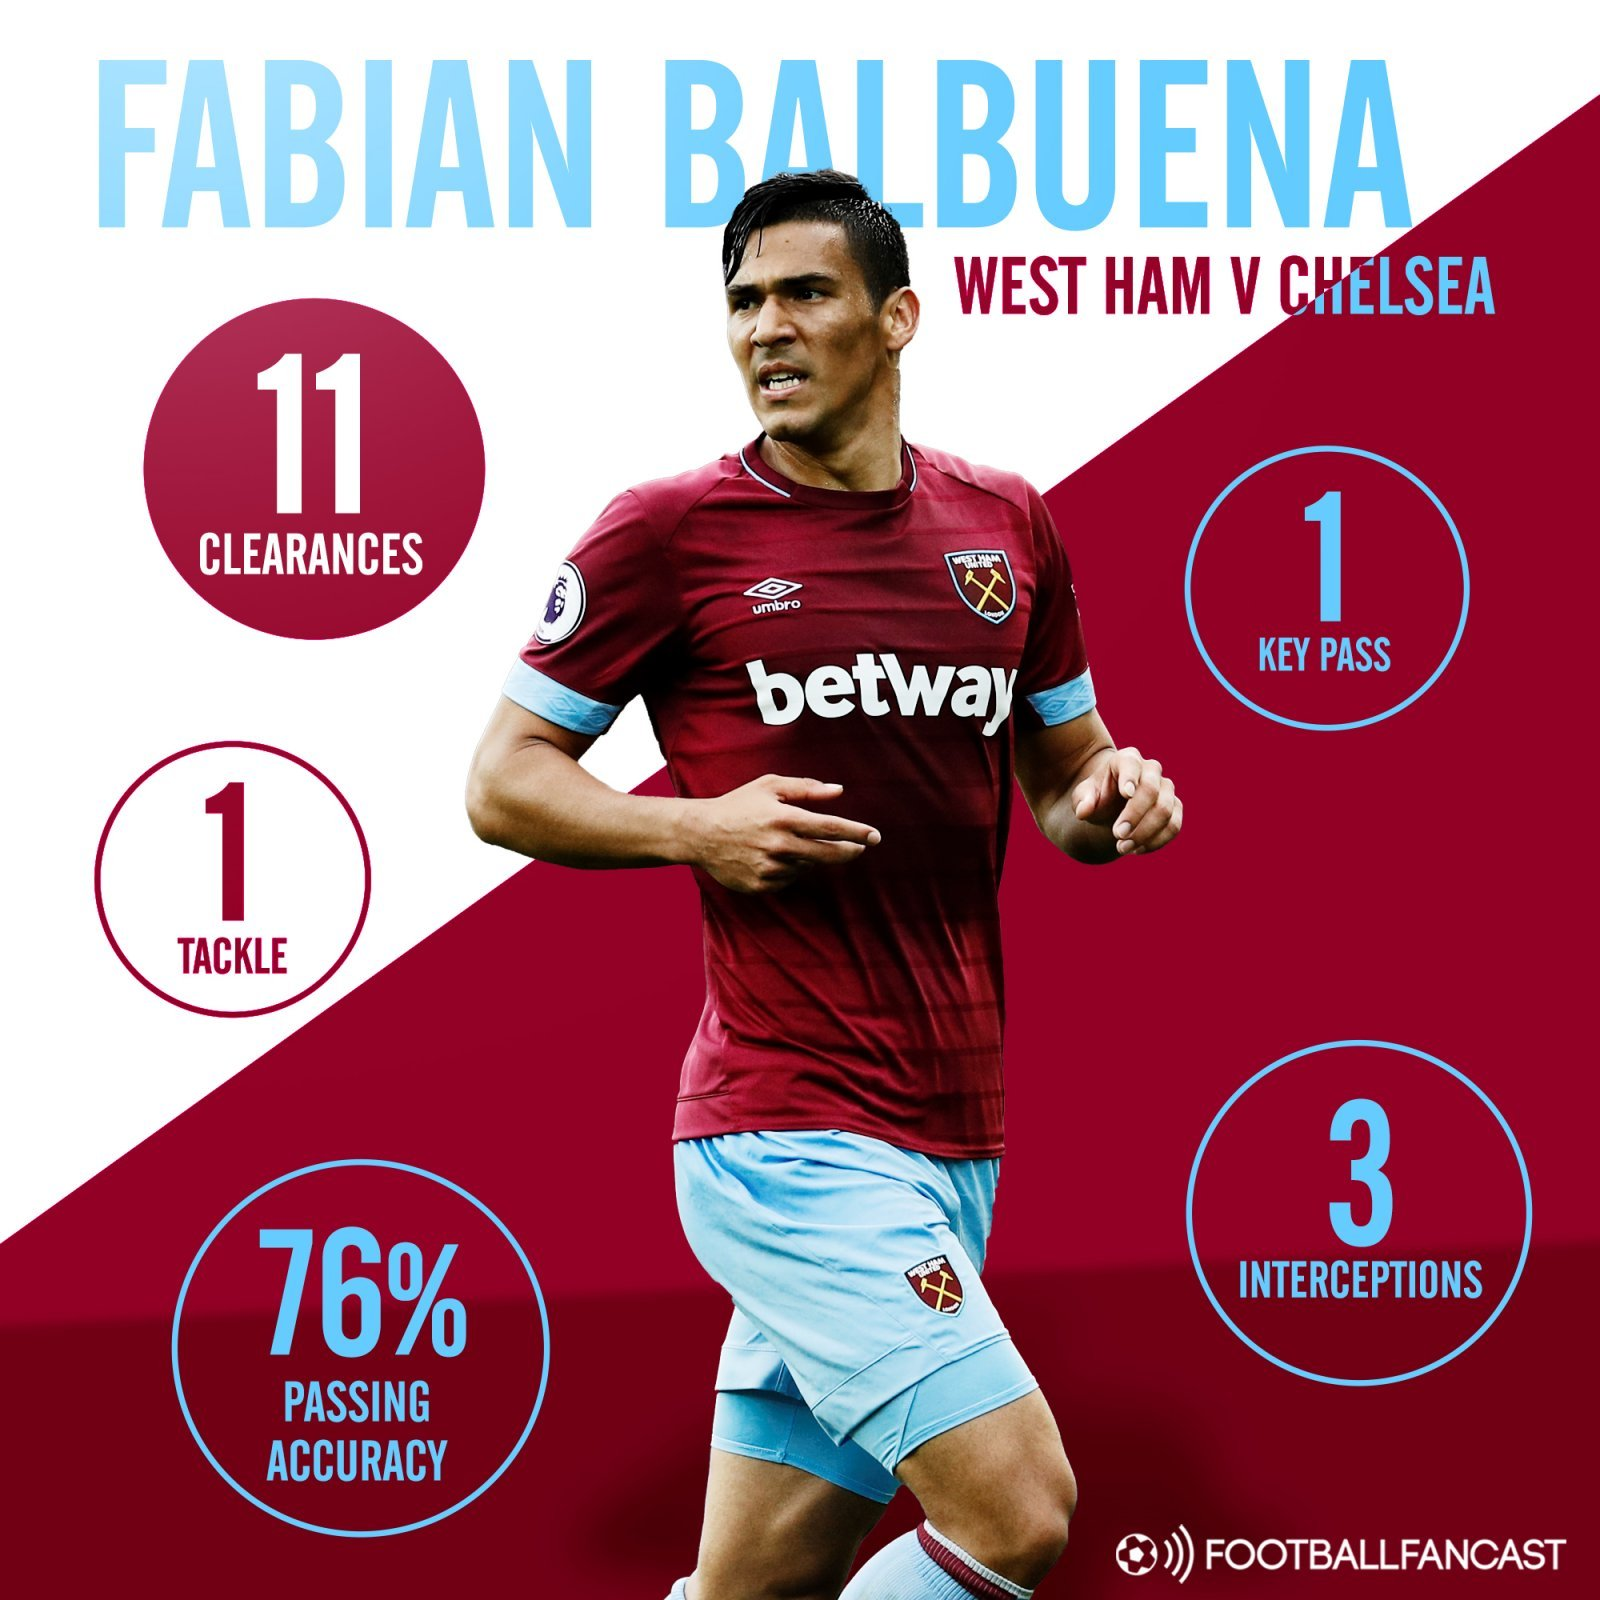 11 clearances, 3 interceptions: West Ham's biggest problem can be solved by 27-year-old star